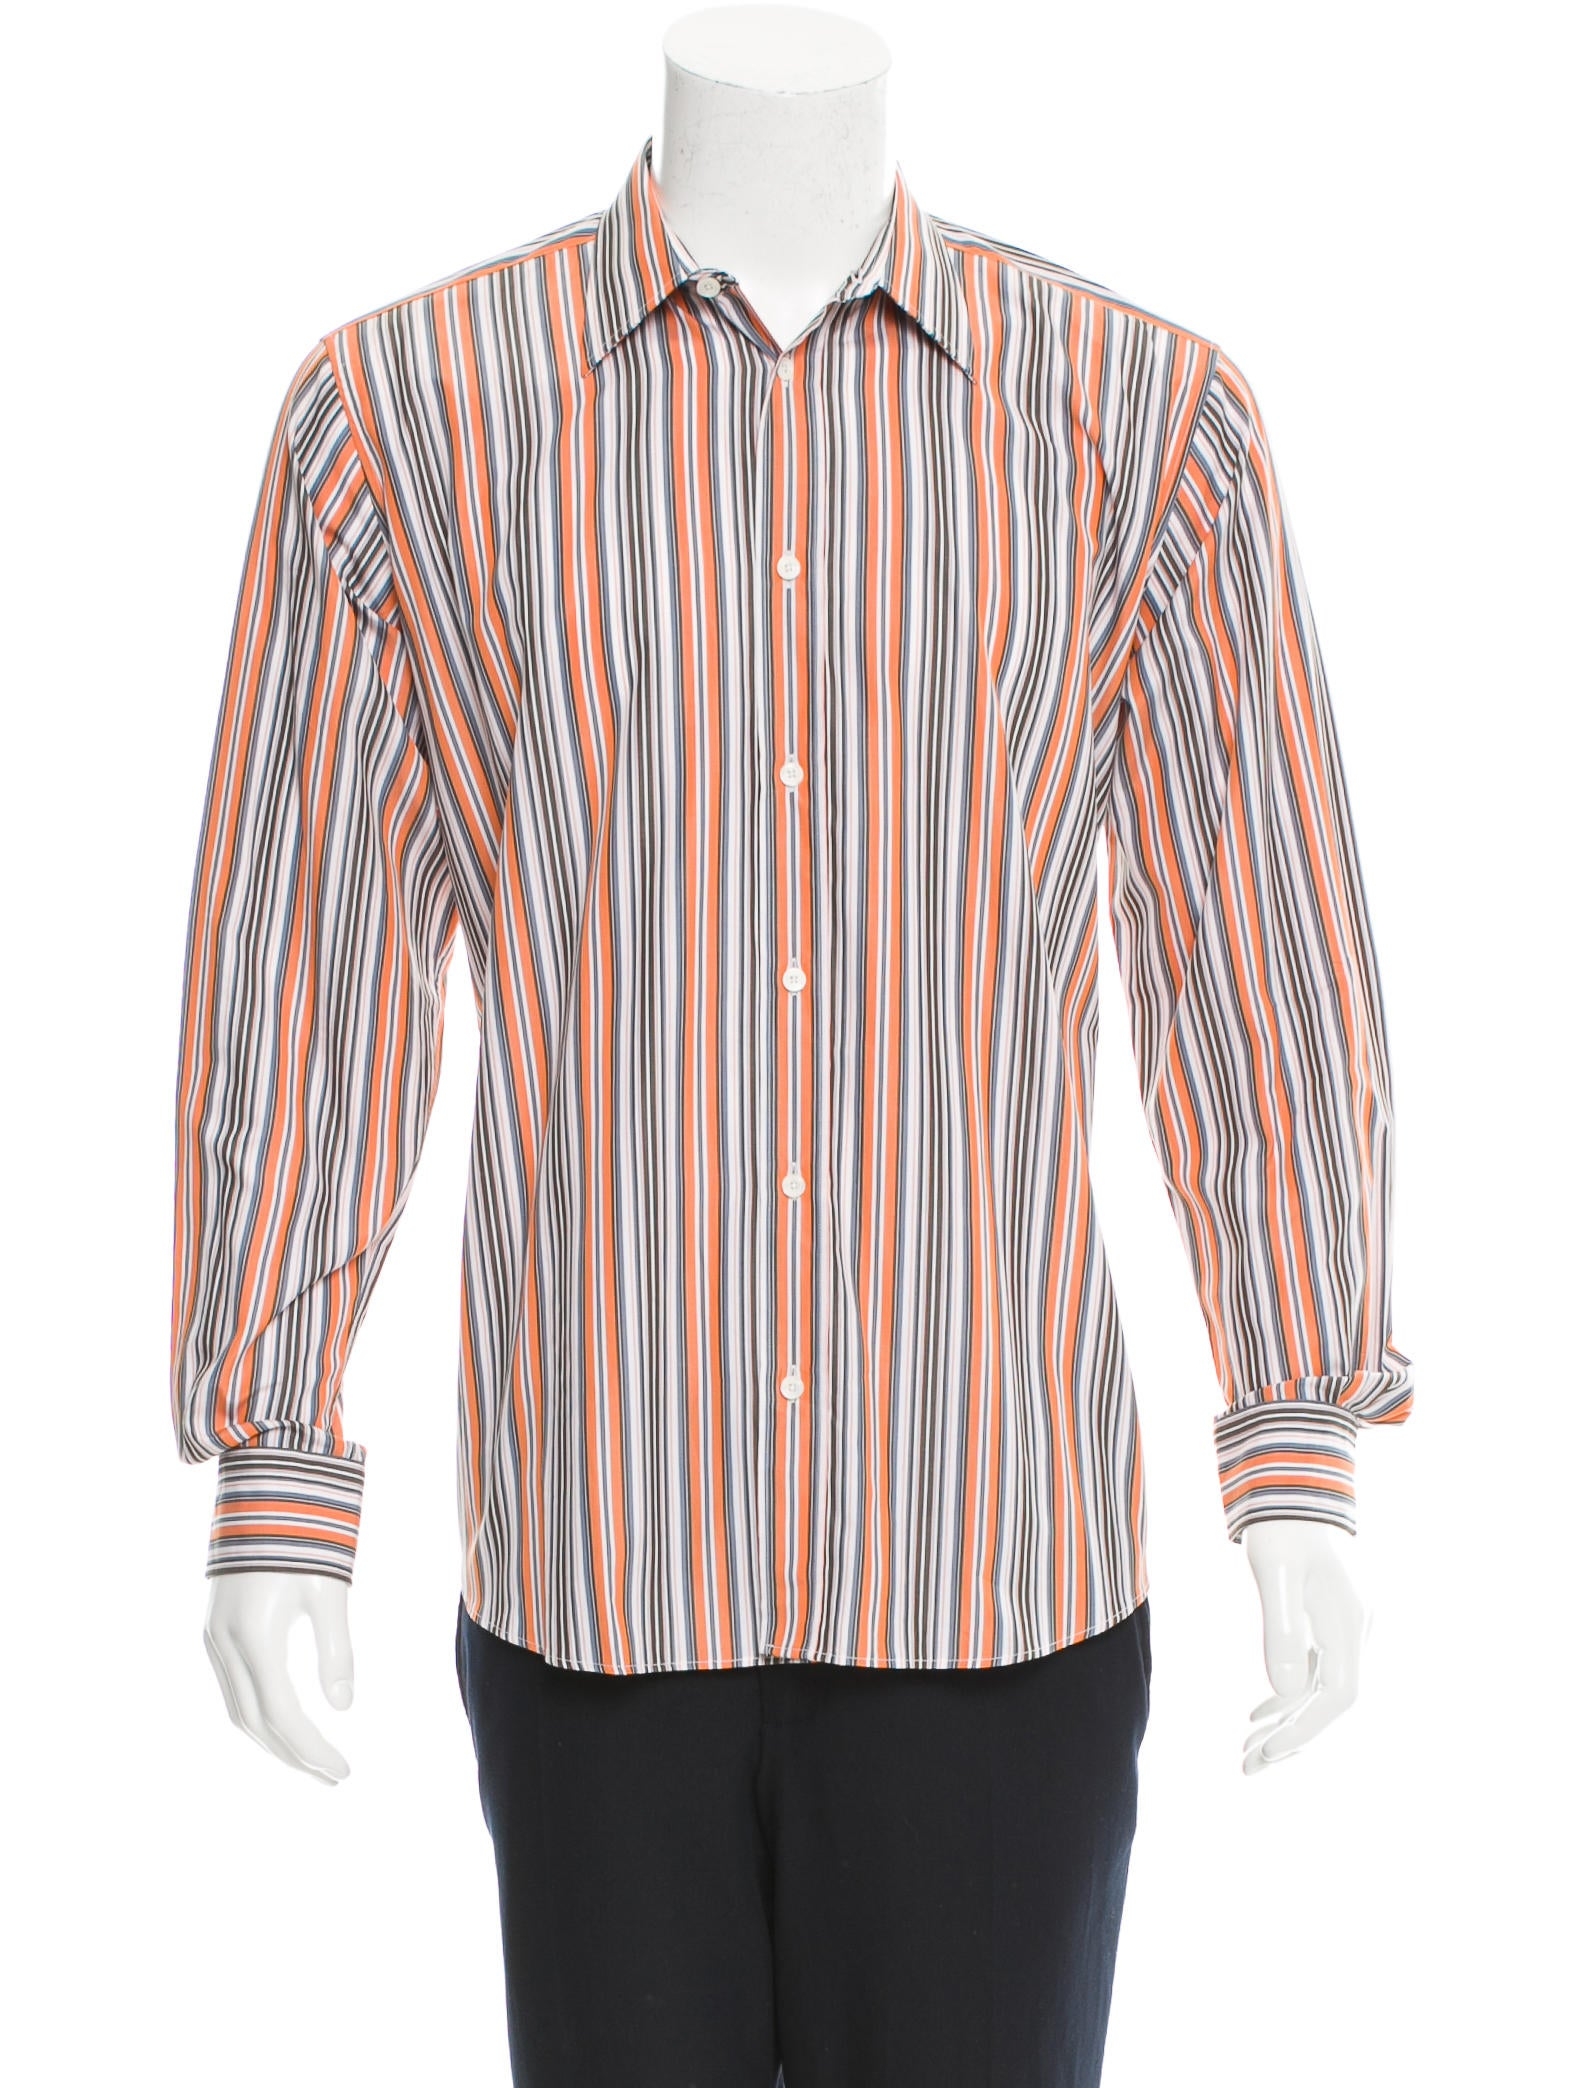 Herm s striped button up shirt clothing her92598 the for Striped button up shirt mens